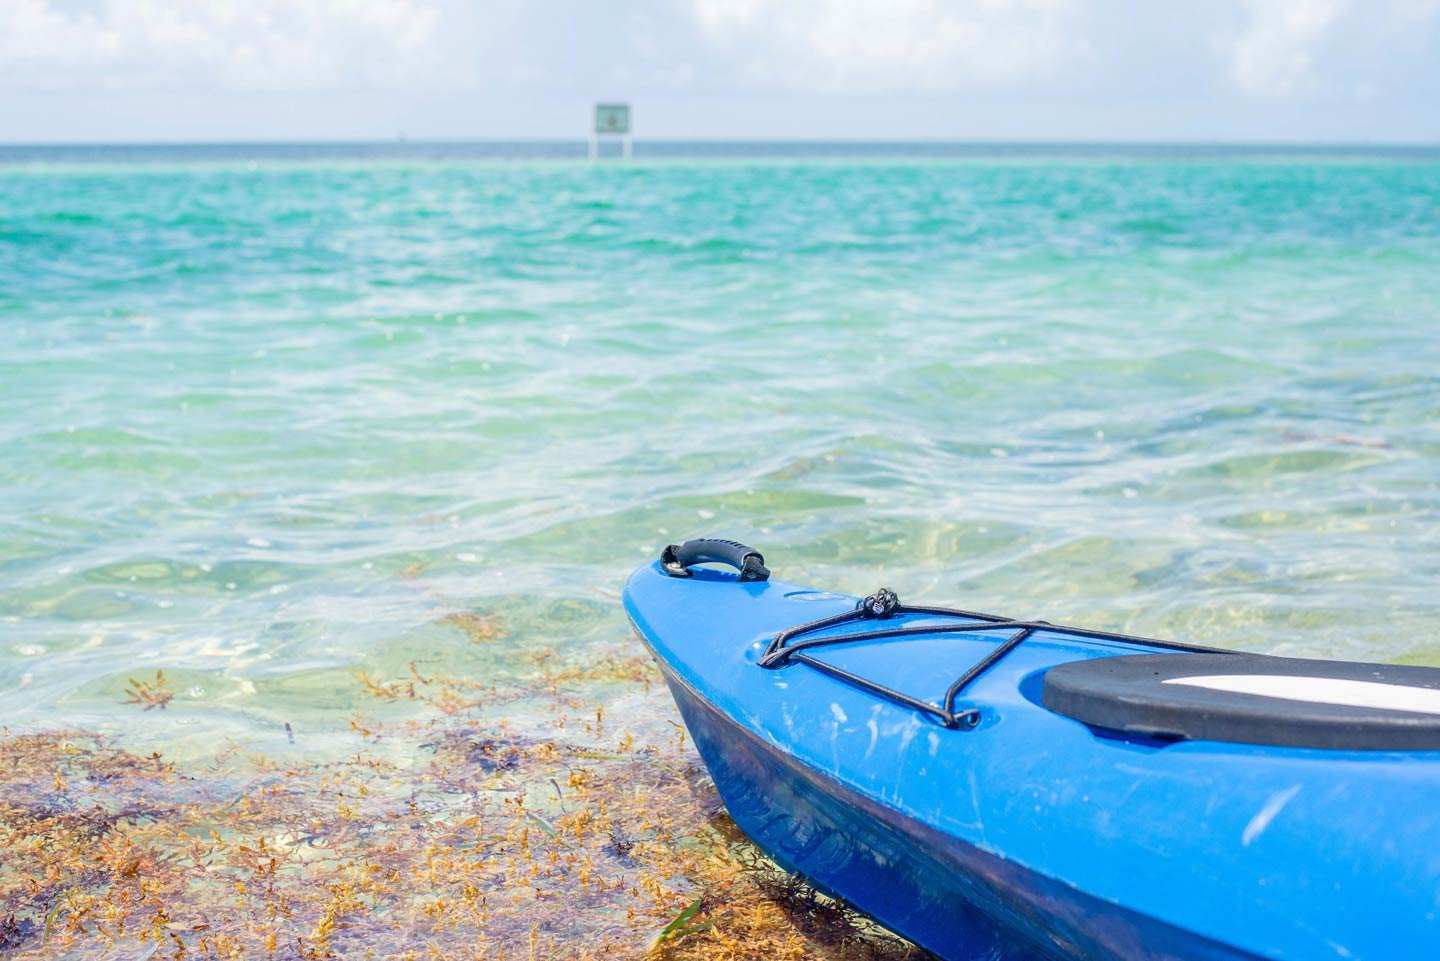 A kayak on a beach in Florida